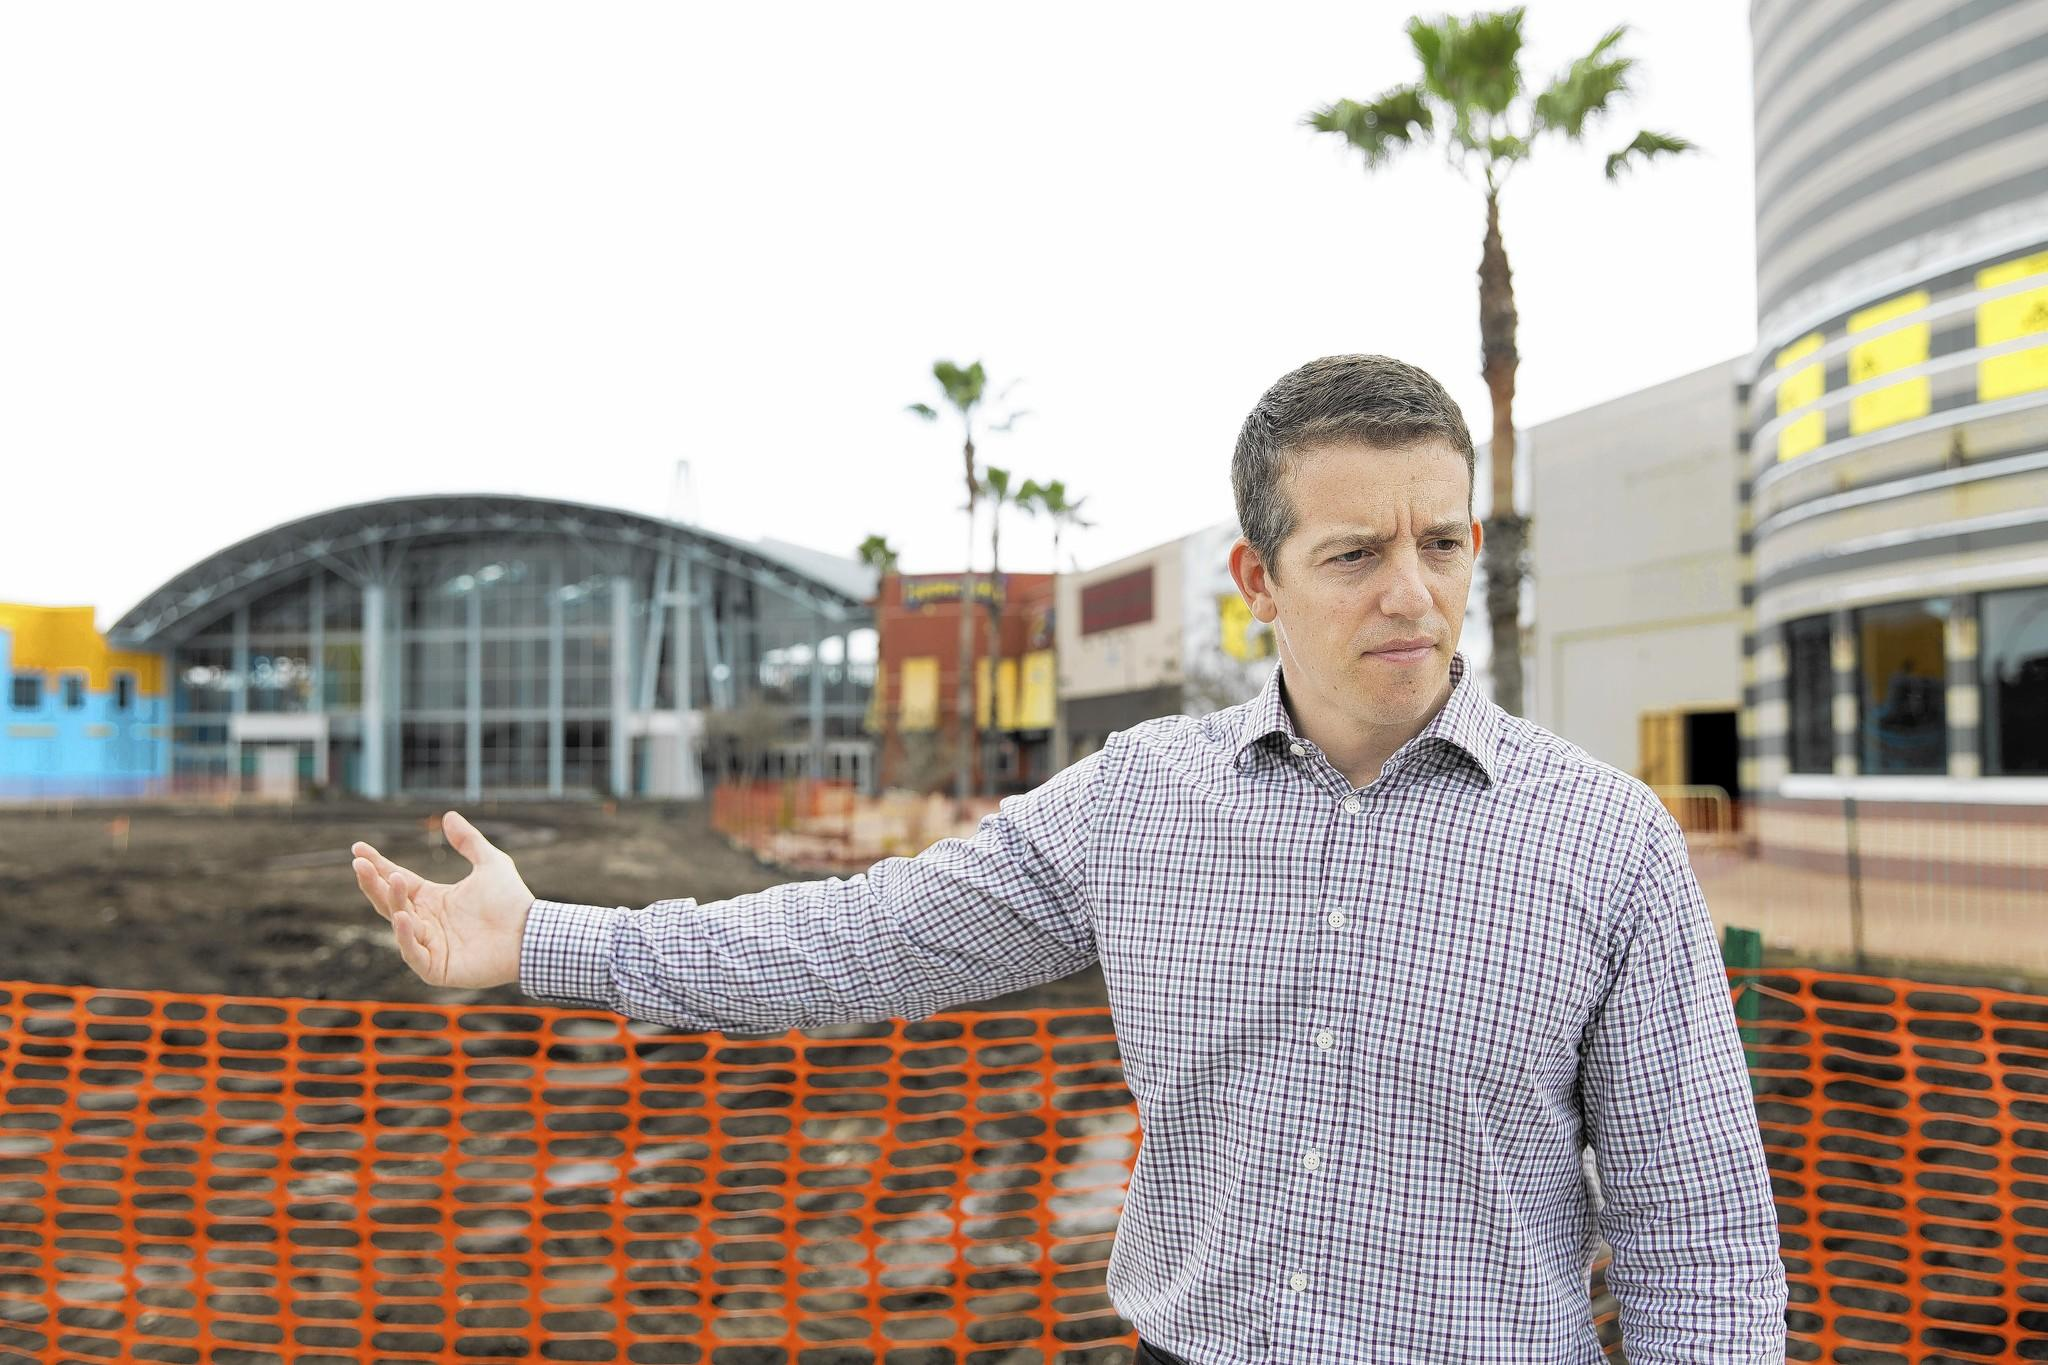 Scott Benjamin, vice president and general manager of Artegon Marketplace, gestures toward the ongoing construction at the entrance to the mall.